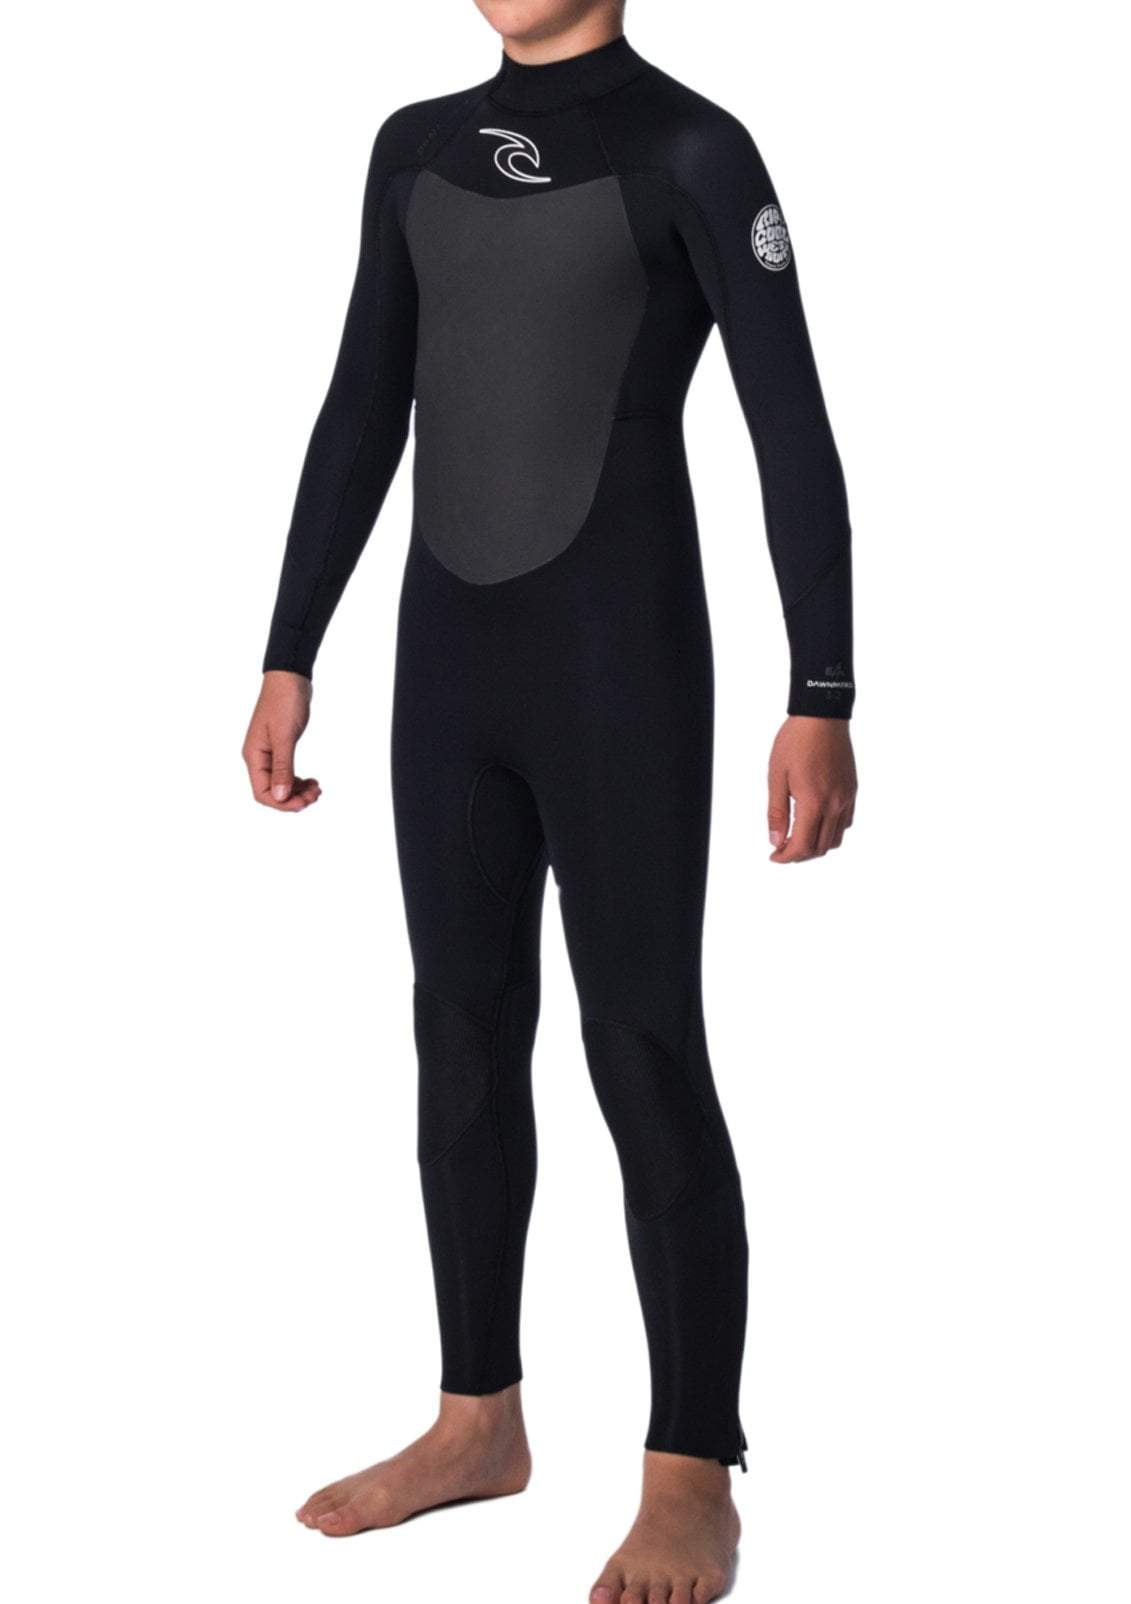 Rip Curl's Junior Dawn Patrol 4/3 Back Zip Wetsuit